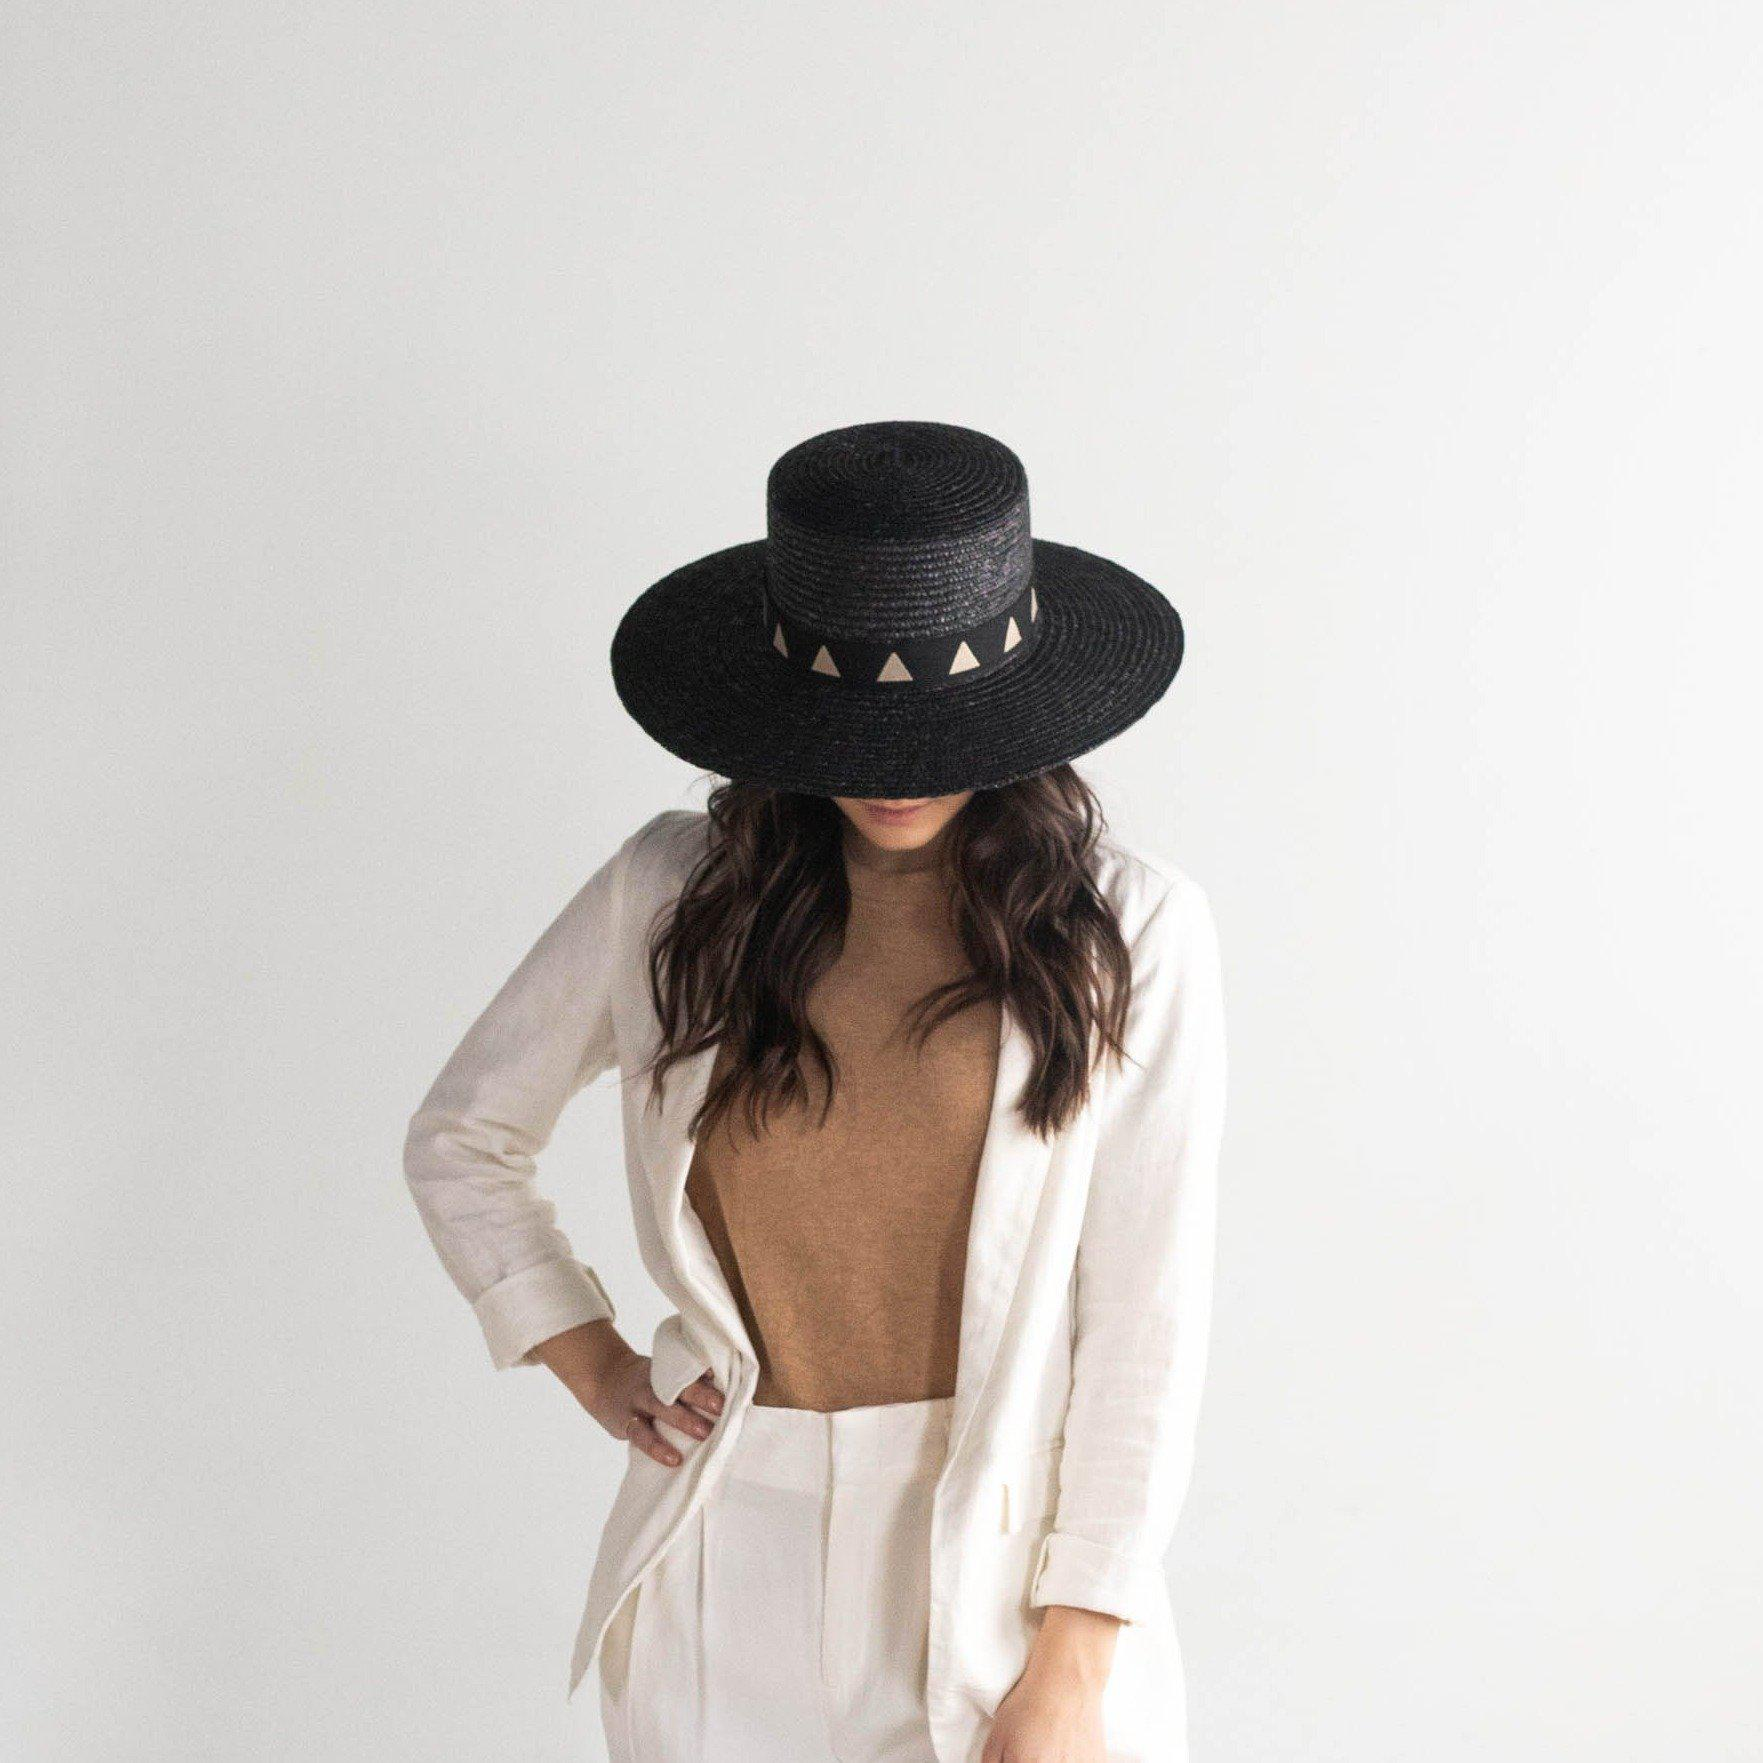 GIGI PIP Hats for Women- Corey Short - Black-Straw Hats